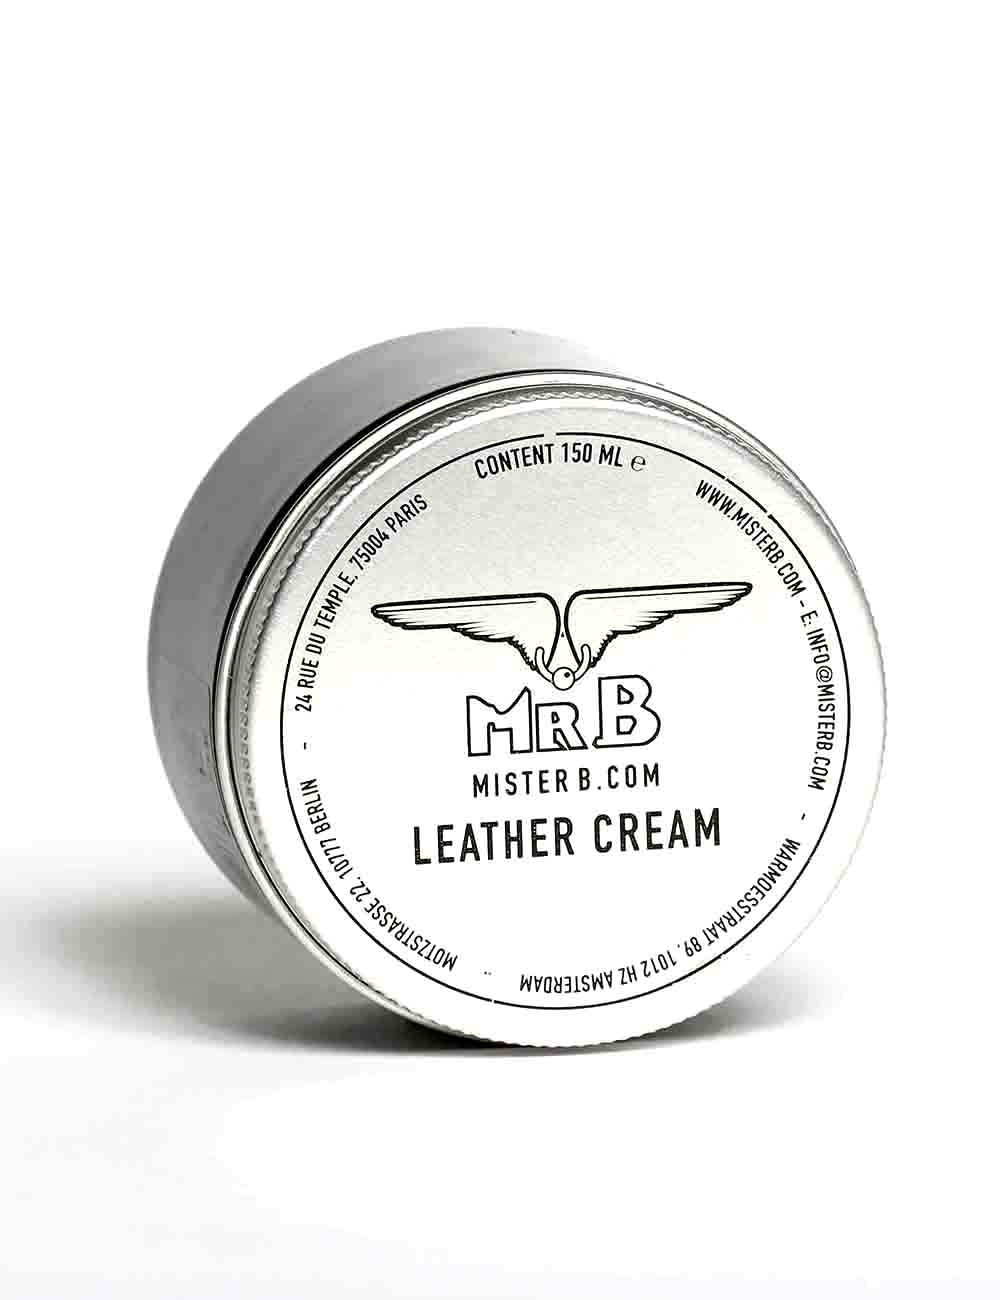 Mr B Leather Conditioning Cream 150ML Available in Canada